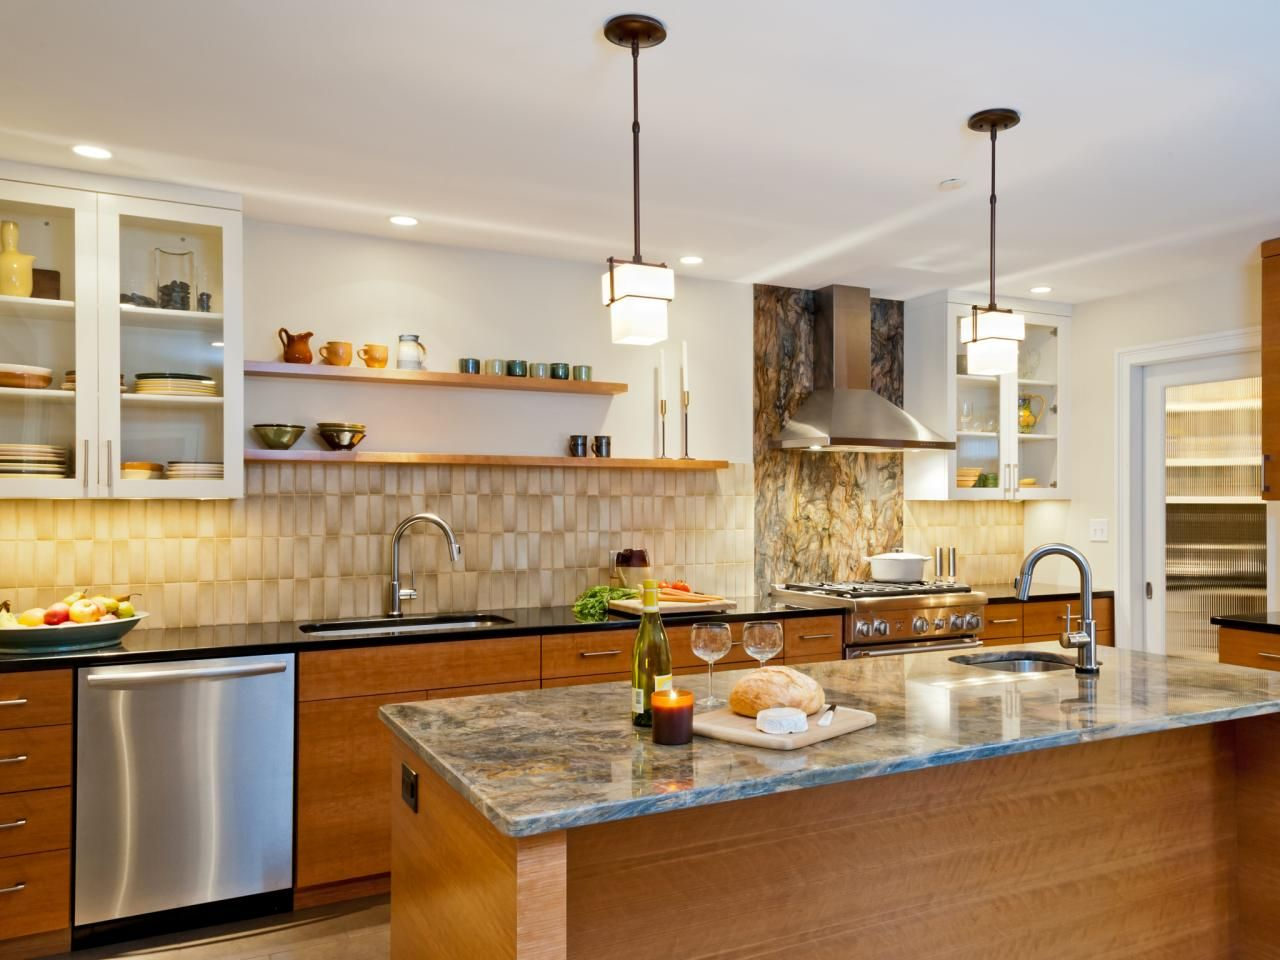 15+ Design Ideas For Kitchens Without Upper Cabinets